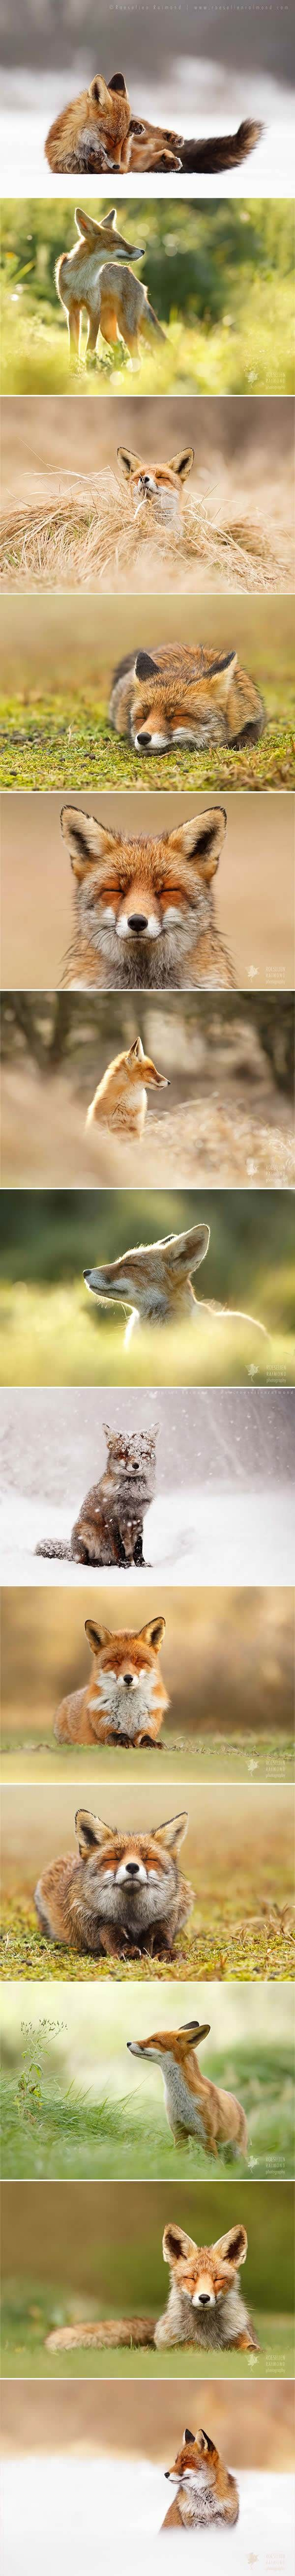 Wild Foxes Enjoying Themselves (By Photographer Roeselien Raimond)